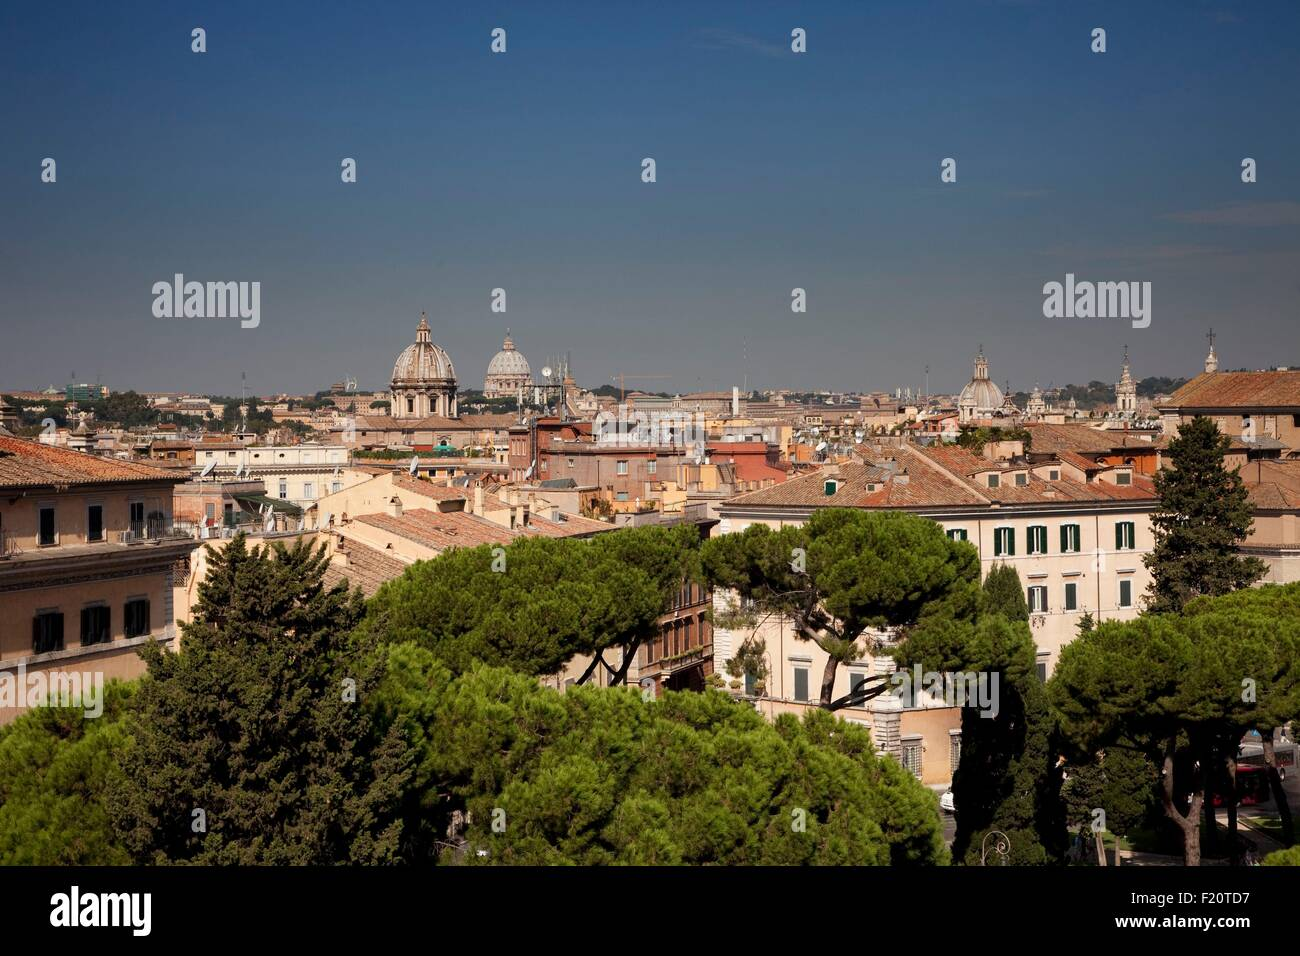 Italy, Latium, Rome, Historical Centre listed as World Heritage by UNESCO, Aracoeli, view from the top of the stairs - Stock Image